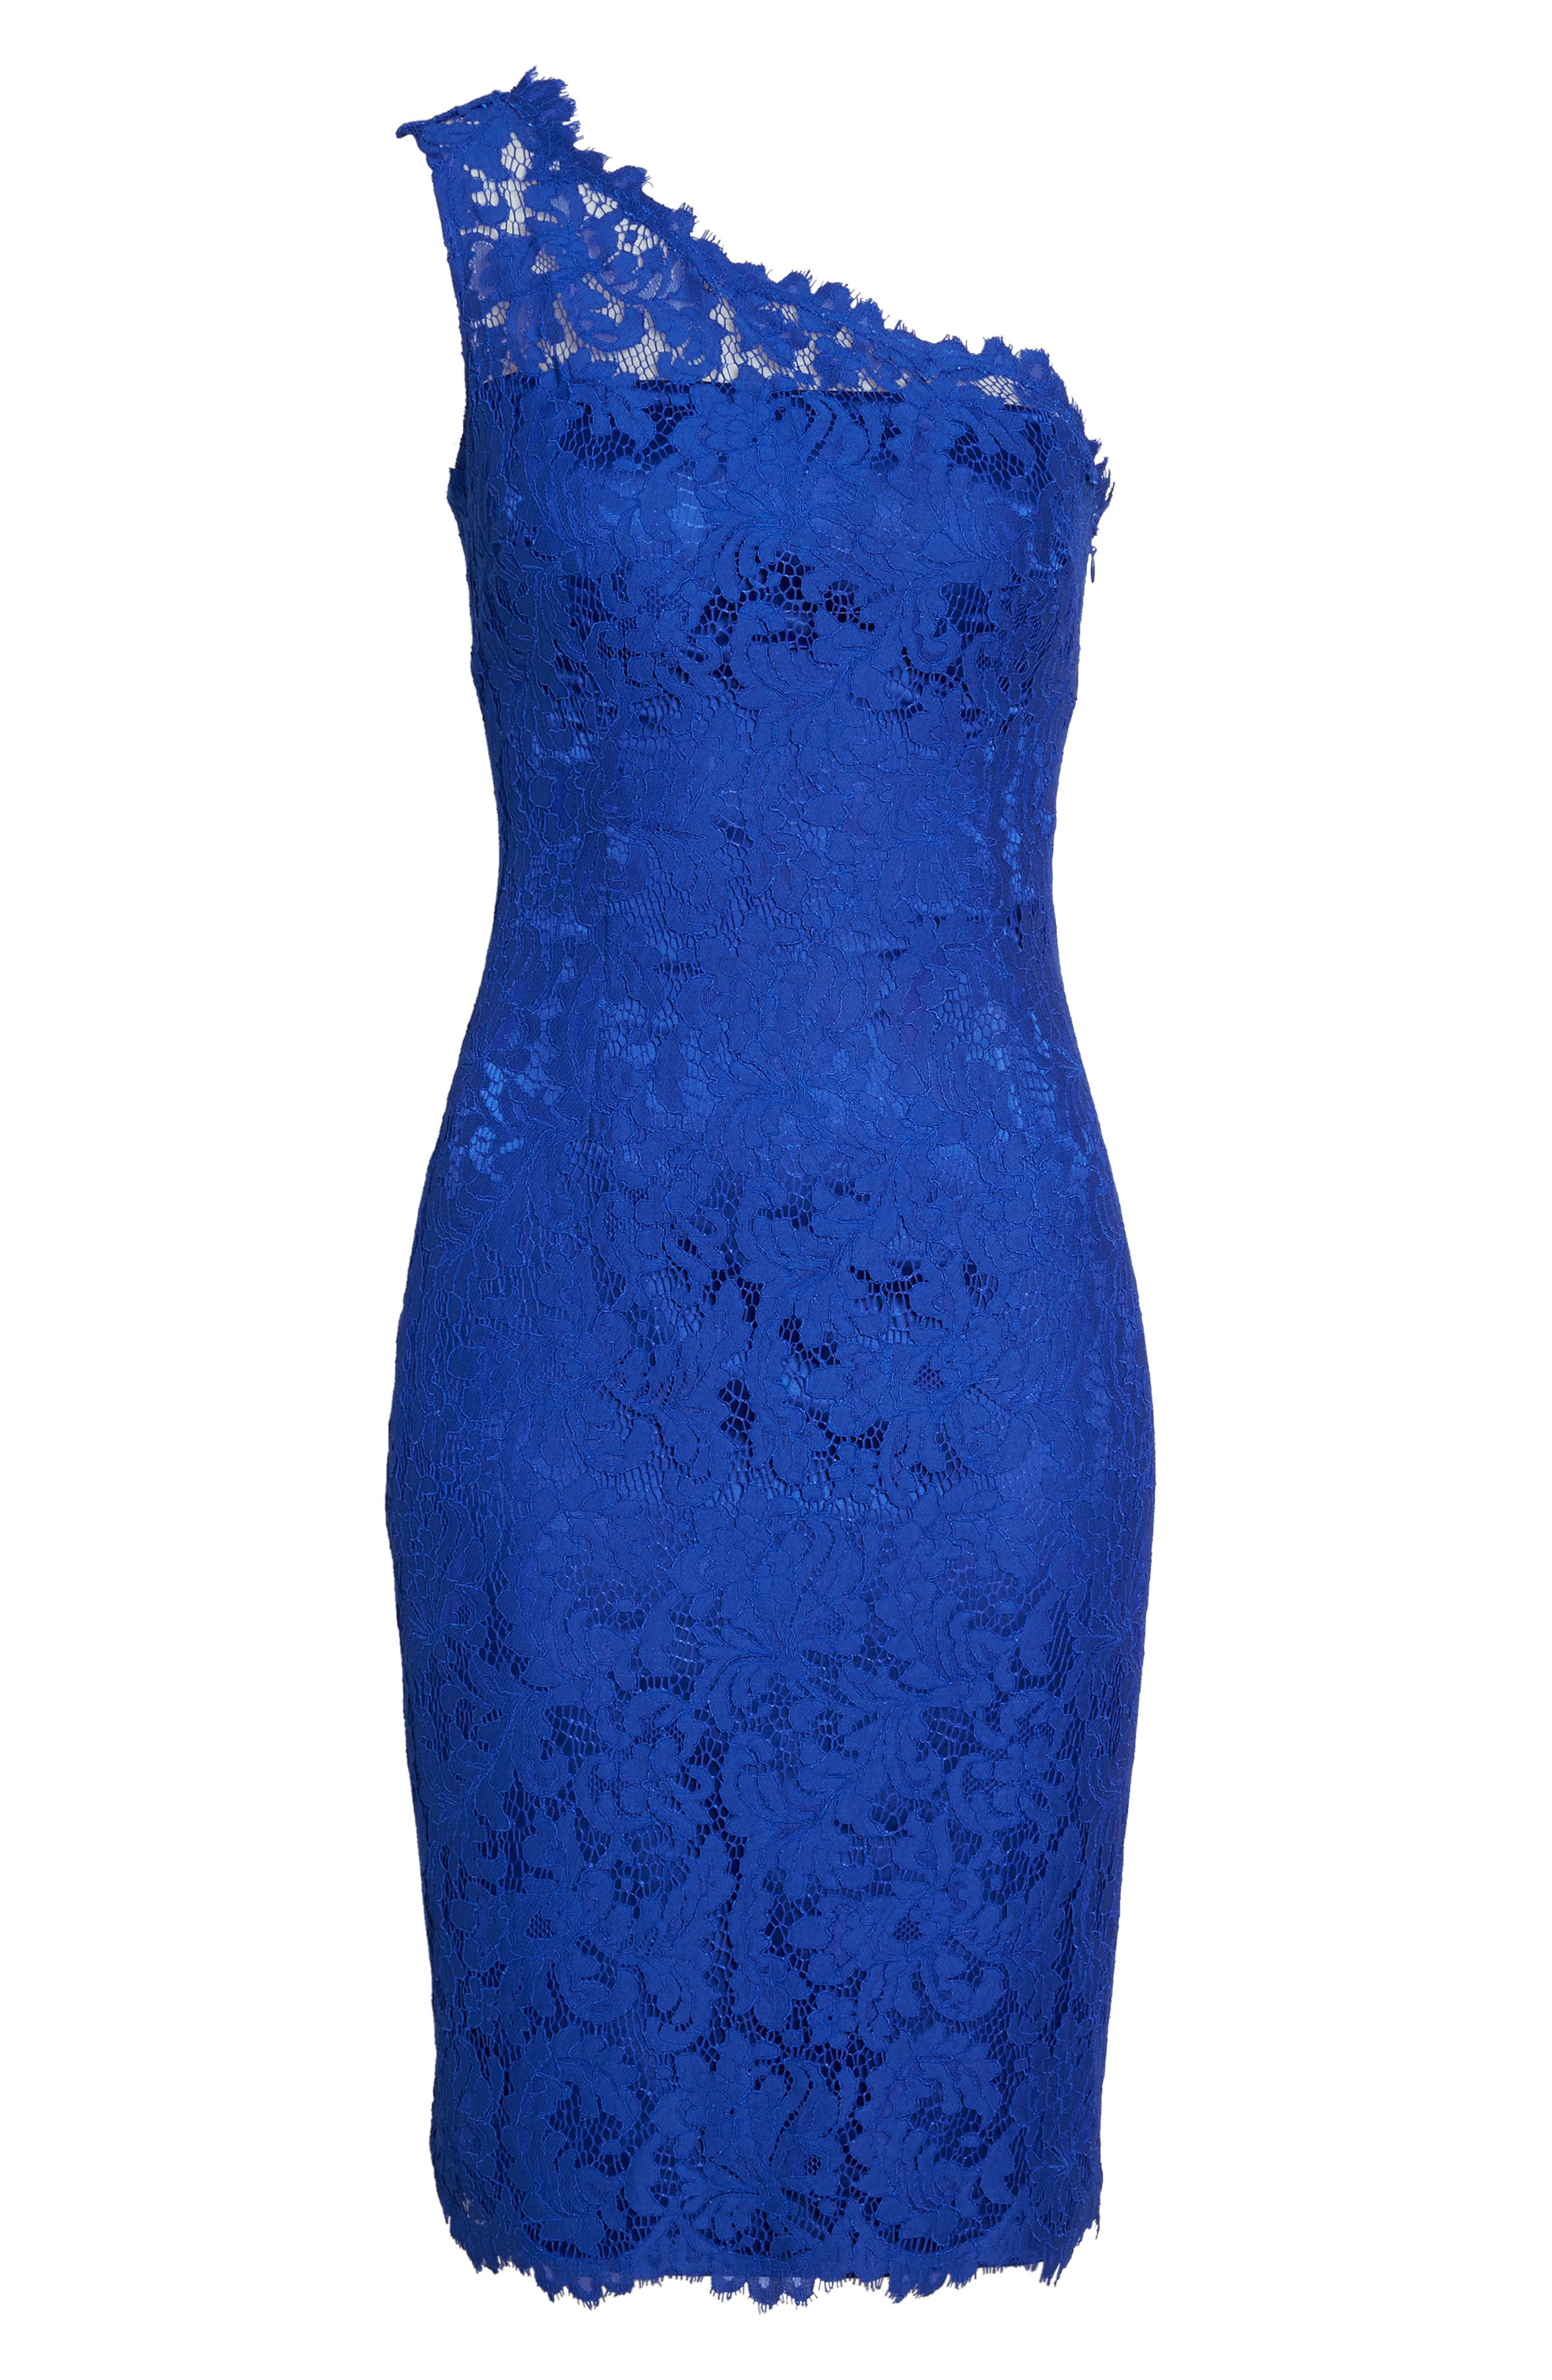 One-Shoulder Lace Sheath Dress,                             Alternate thumbnail 6, color,                             Royal